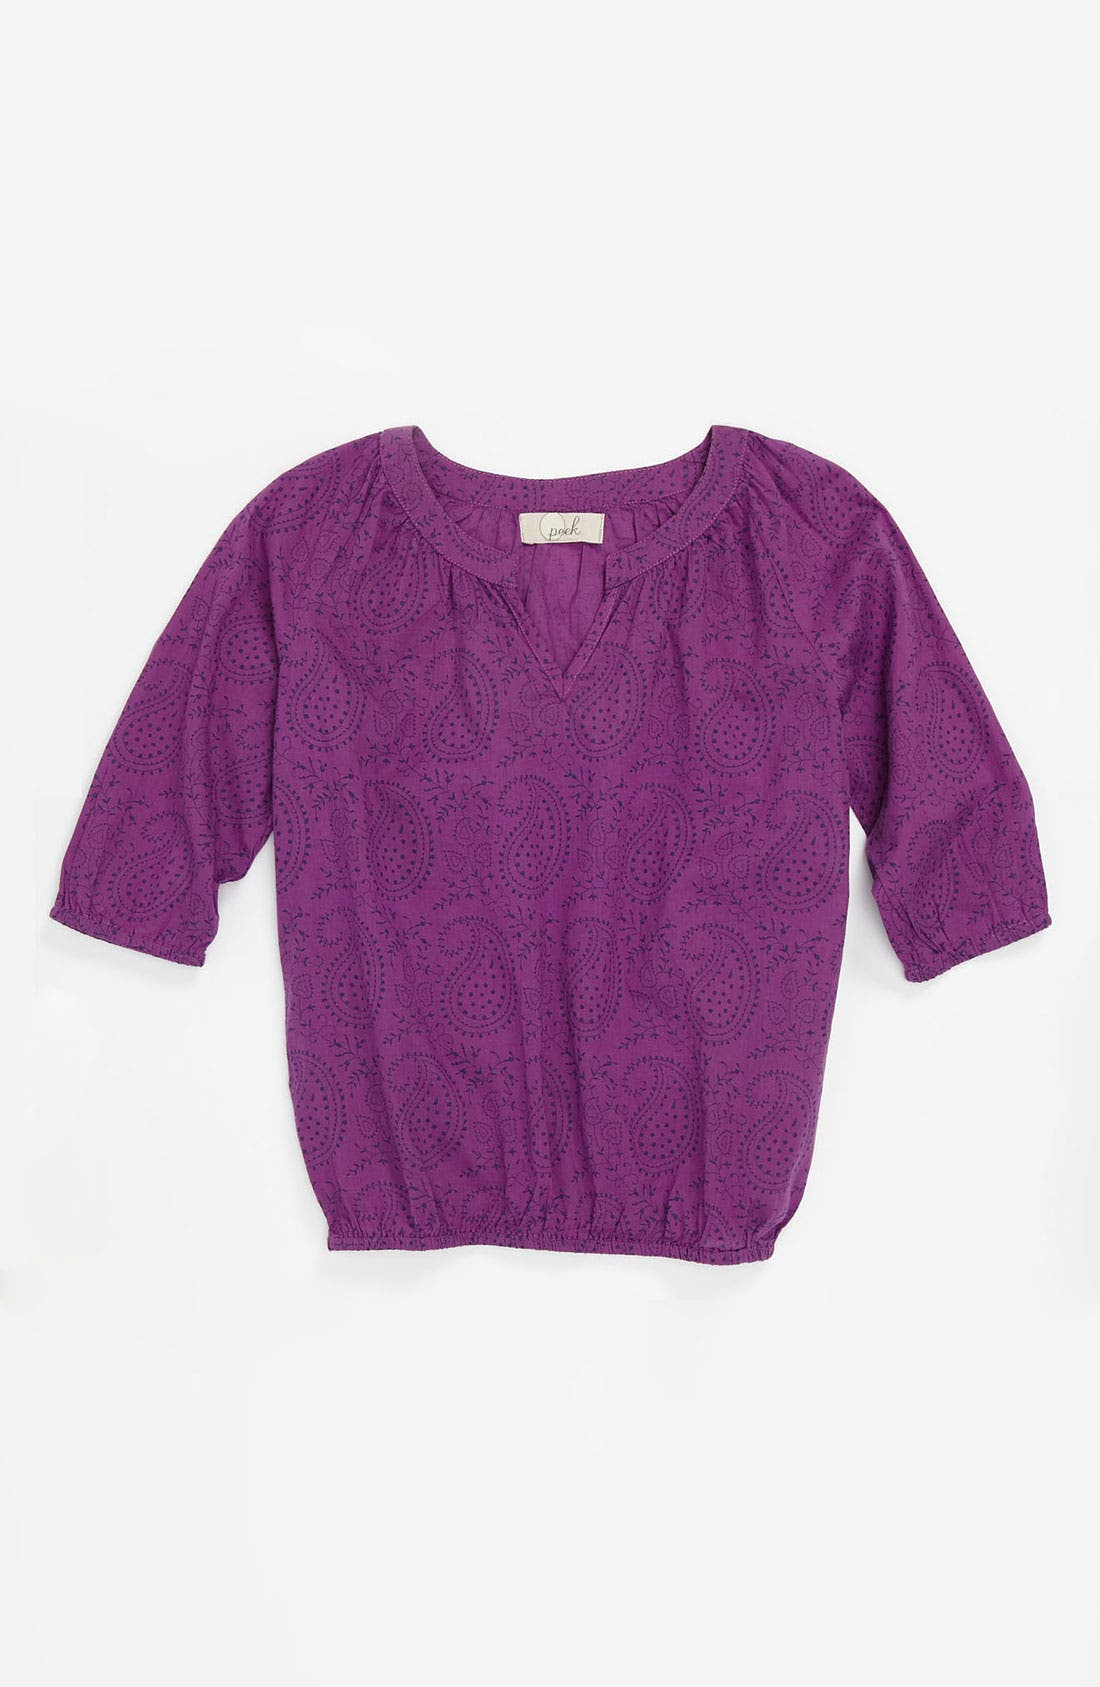 Alternate Image 1 Selected - Peek 'Murano' Top (Toddler, Little Girls & Big Girls)